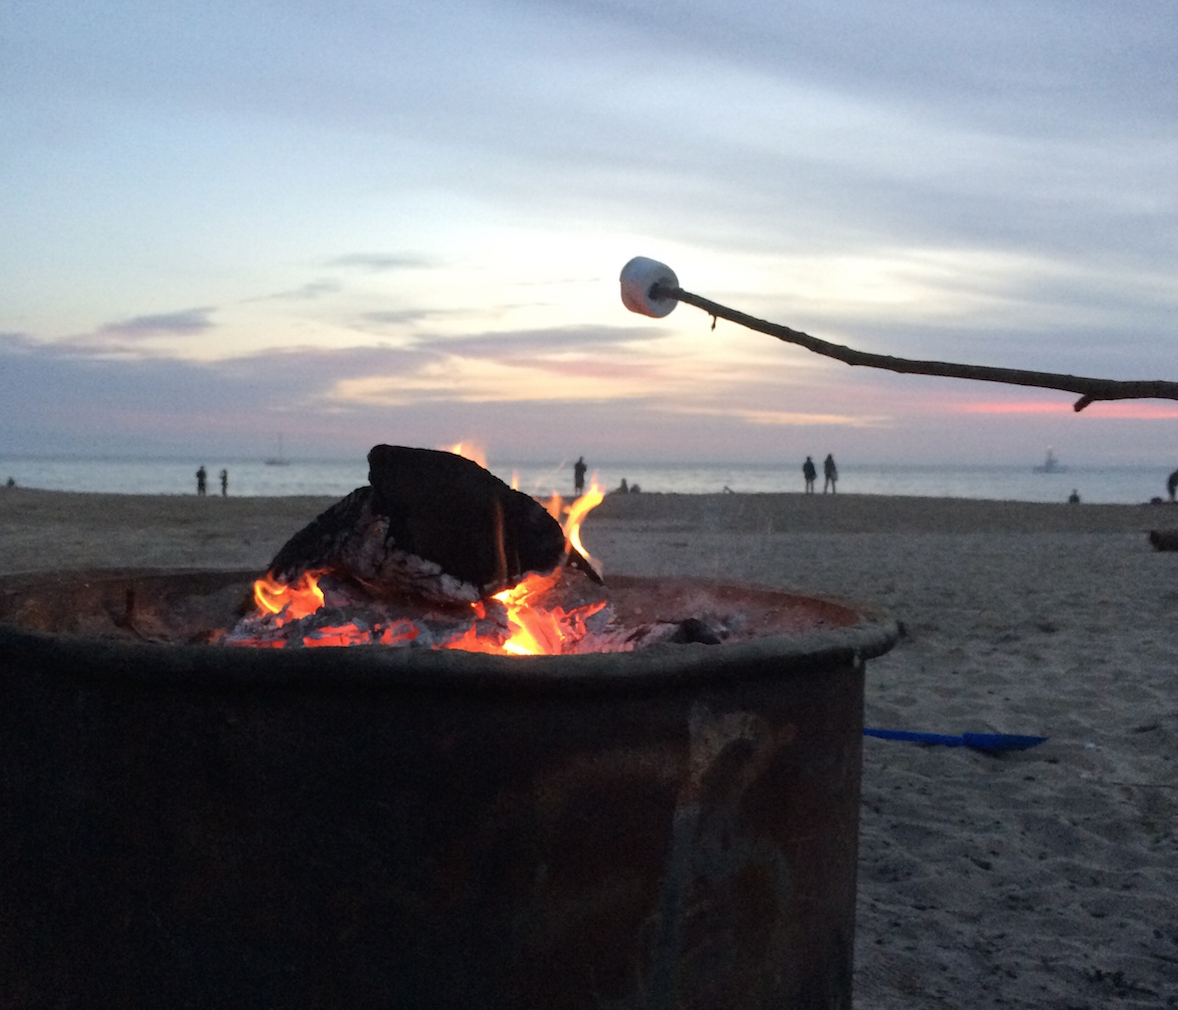 Nothing tastes better than S'mores made from a toasty beach bonfire at sunset.